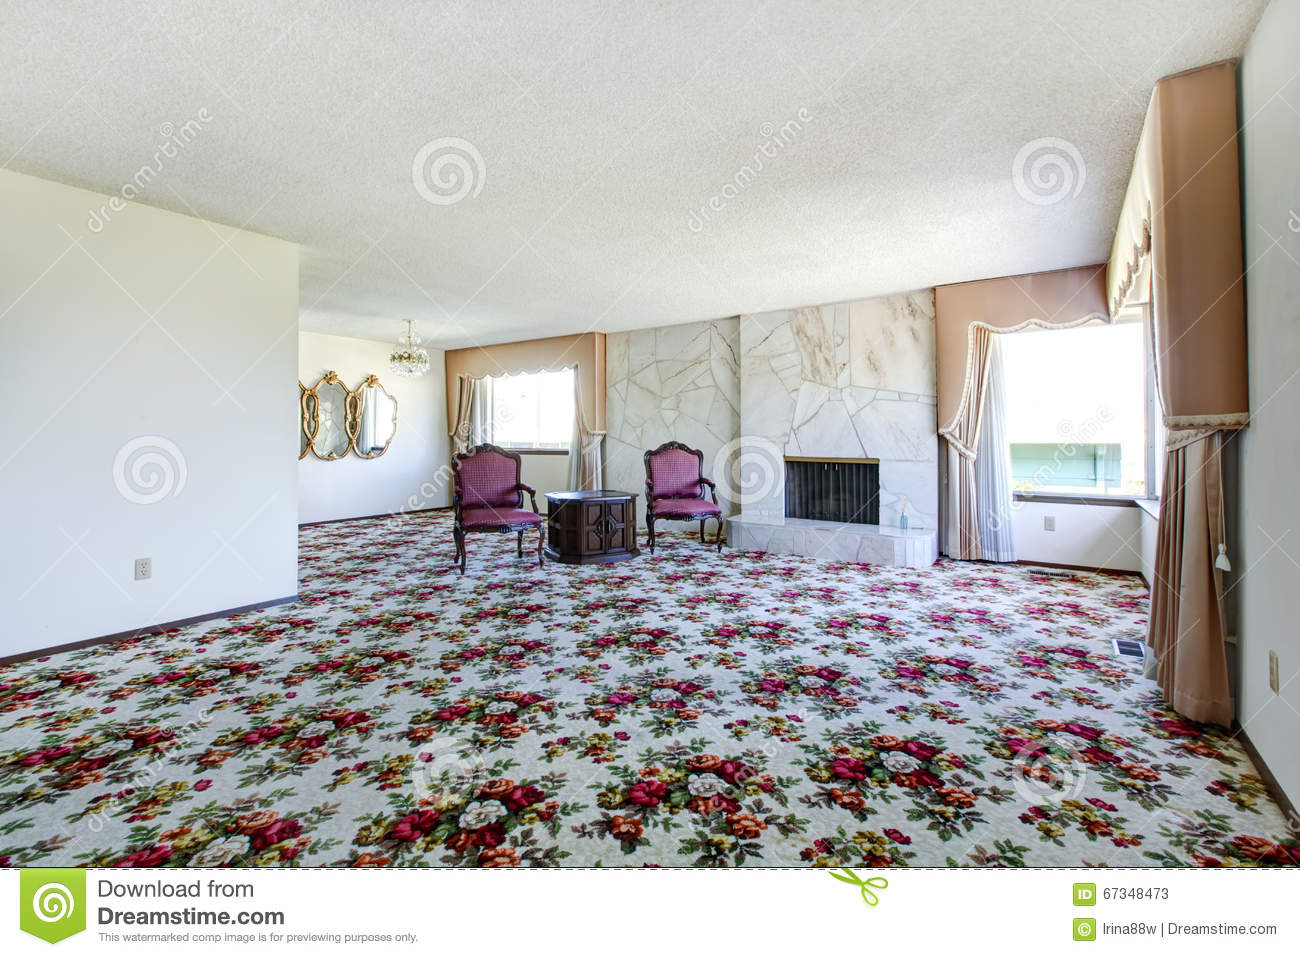 Large Empty Living Room With Floral Patterned Carpet, Fire